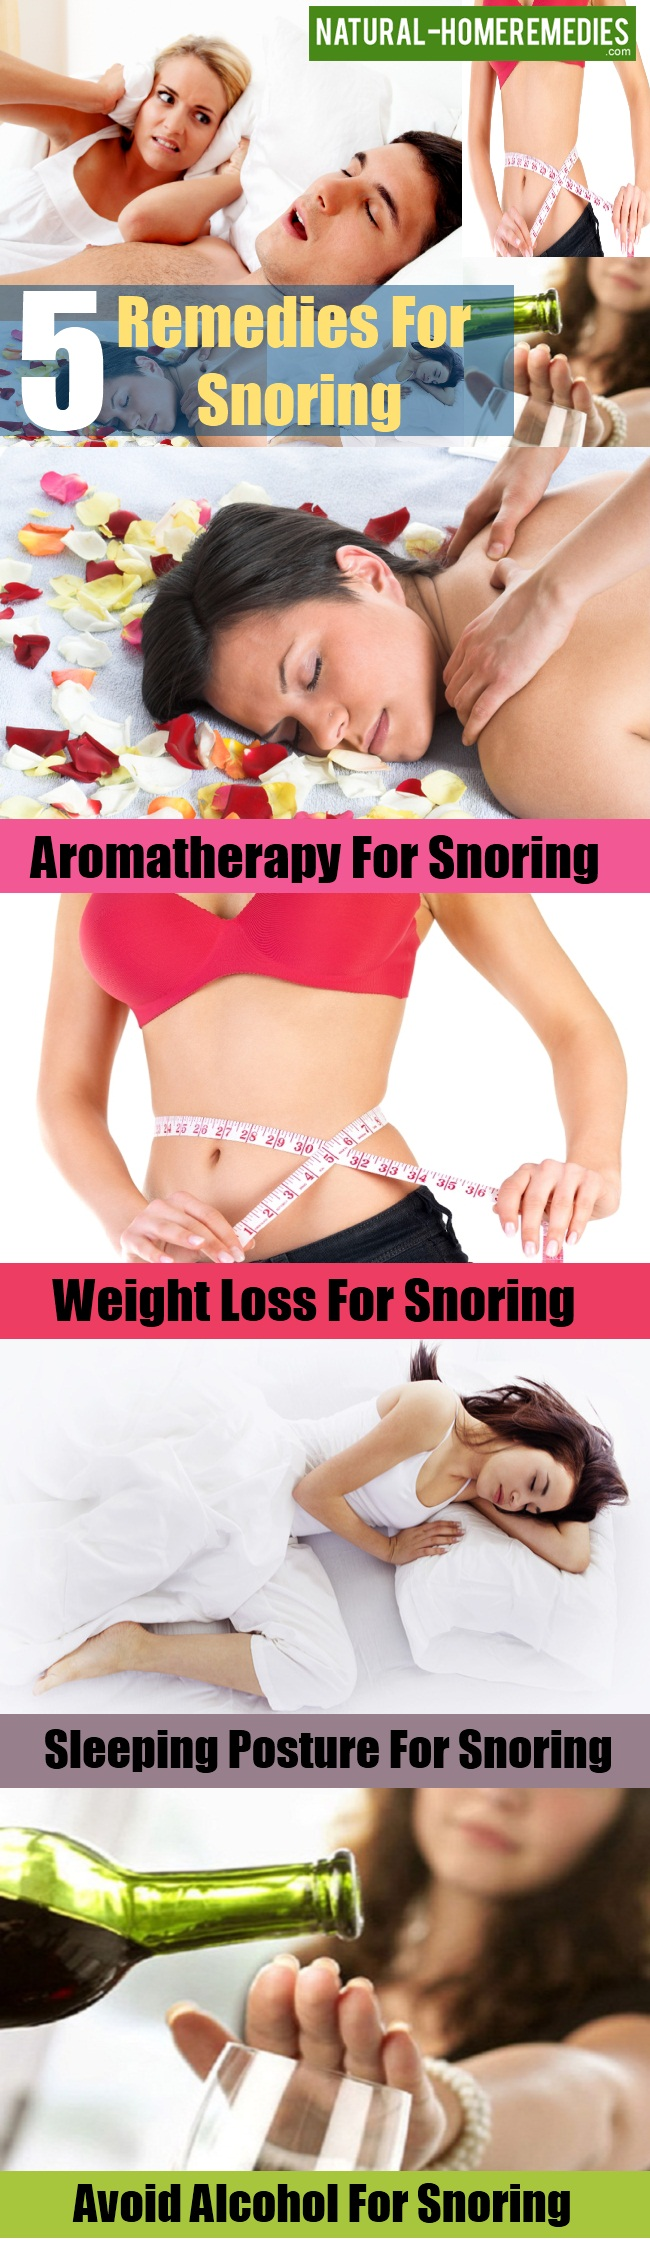 Free Home Remedies For Snoring